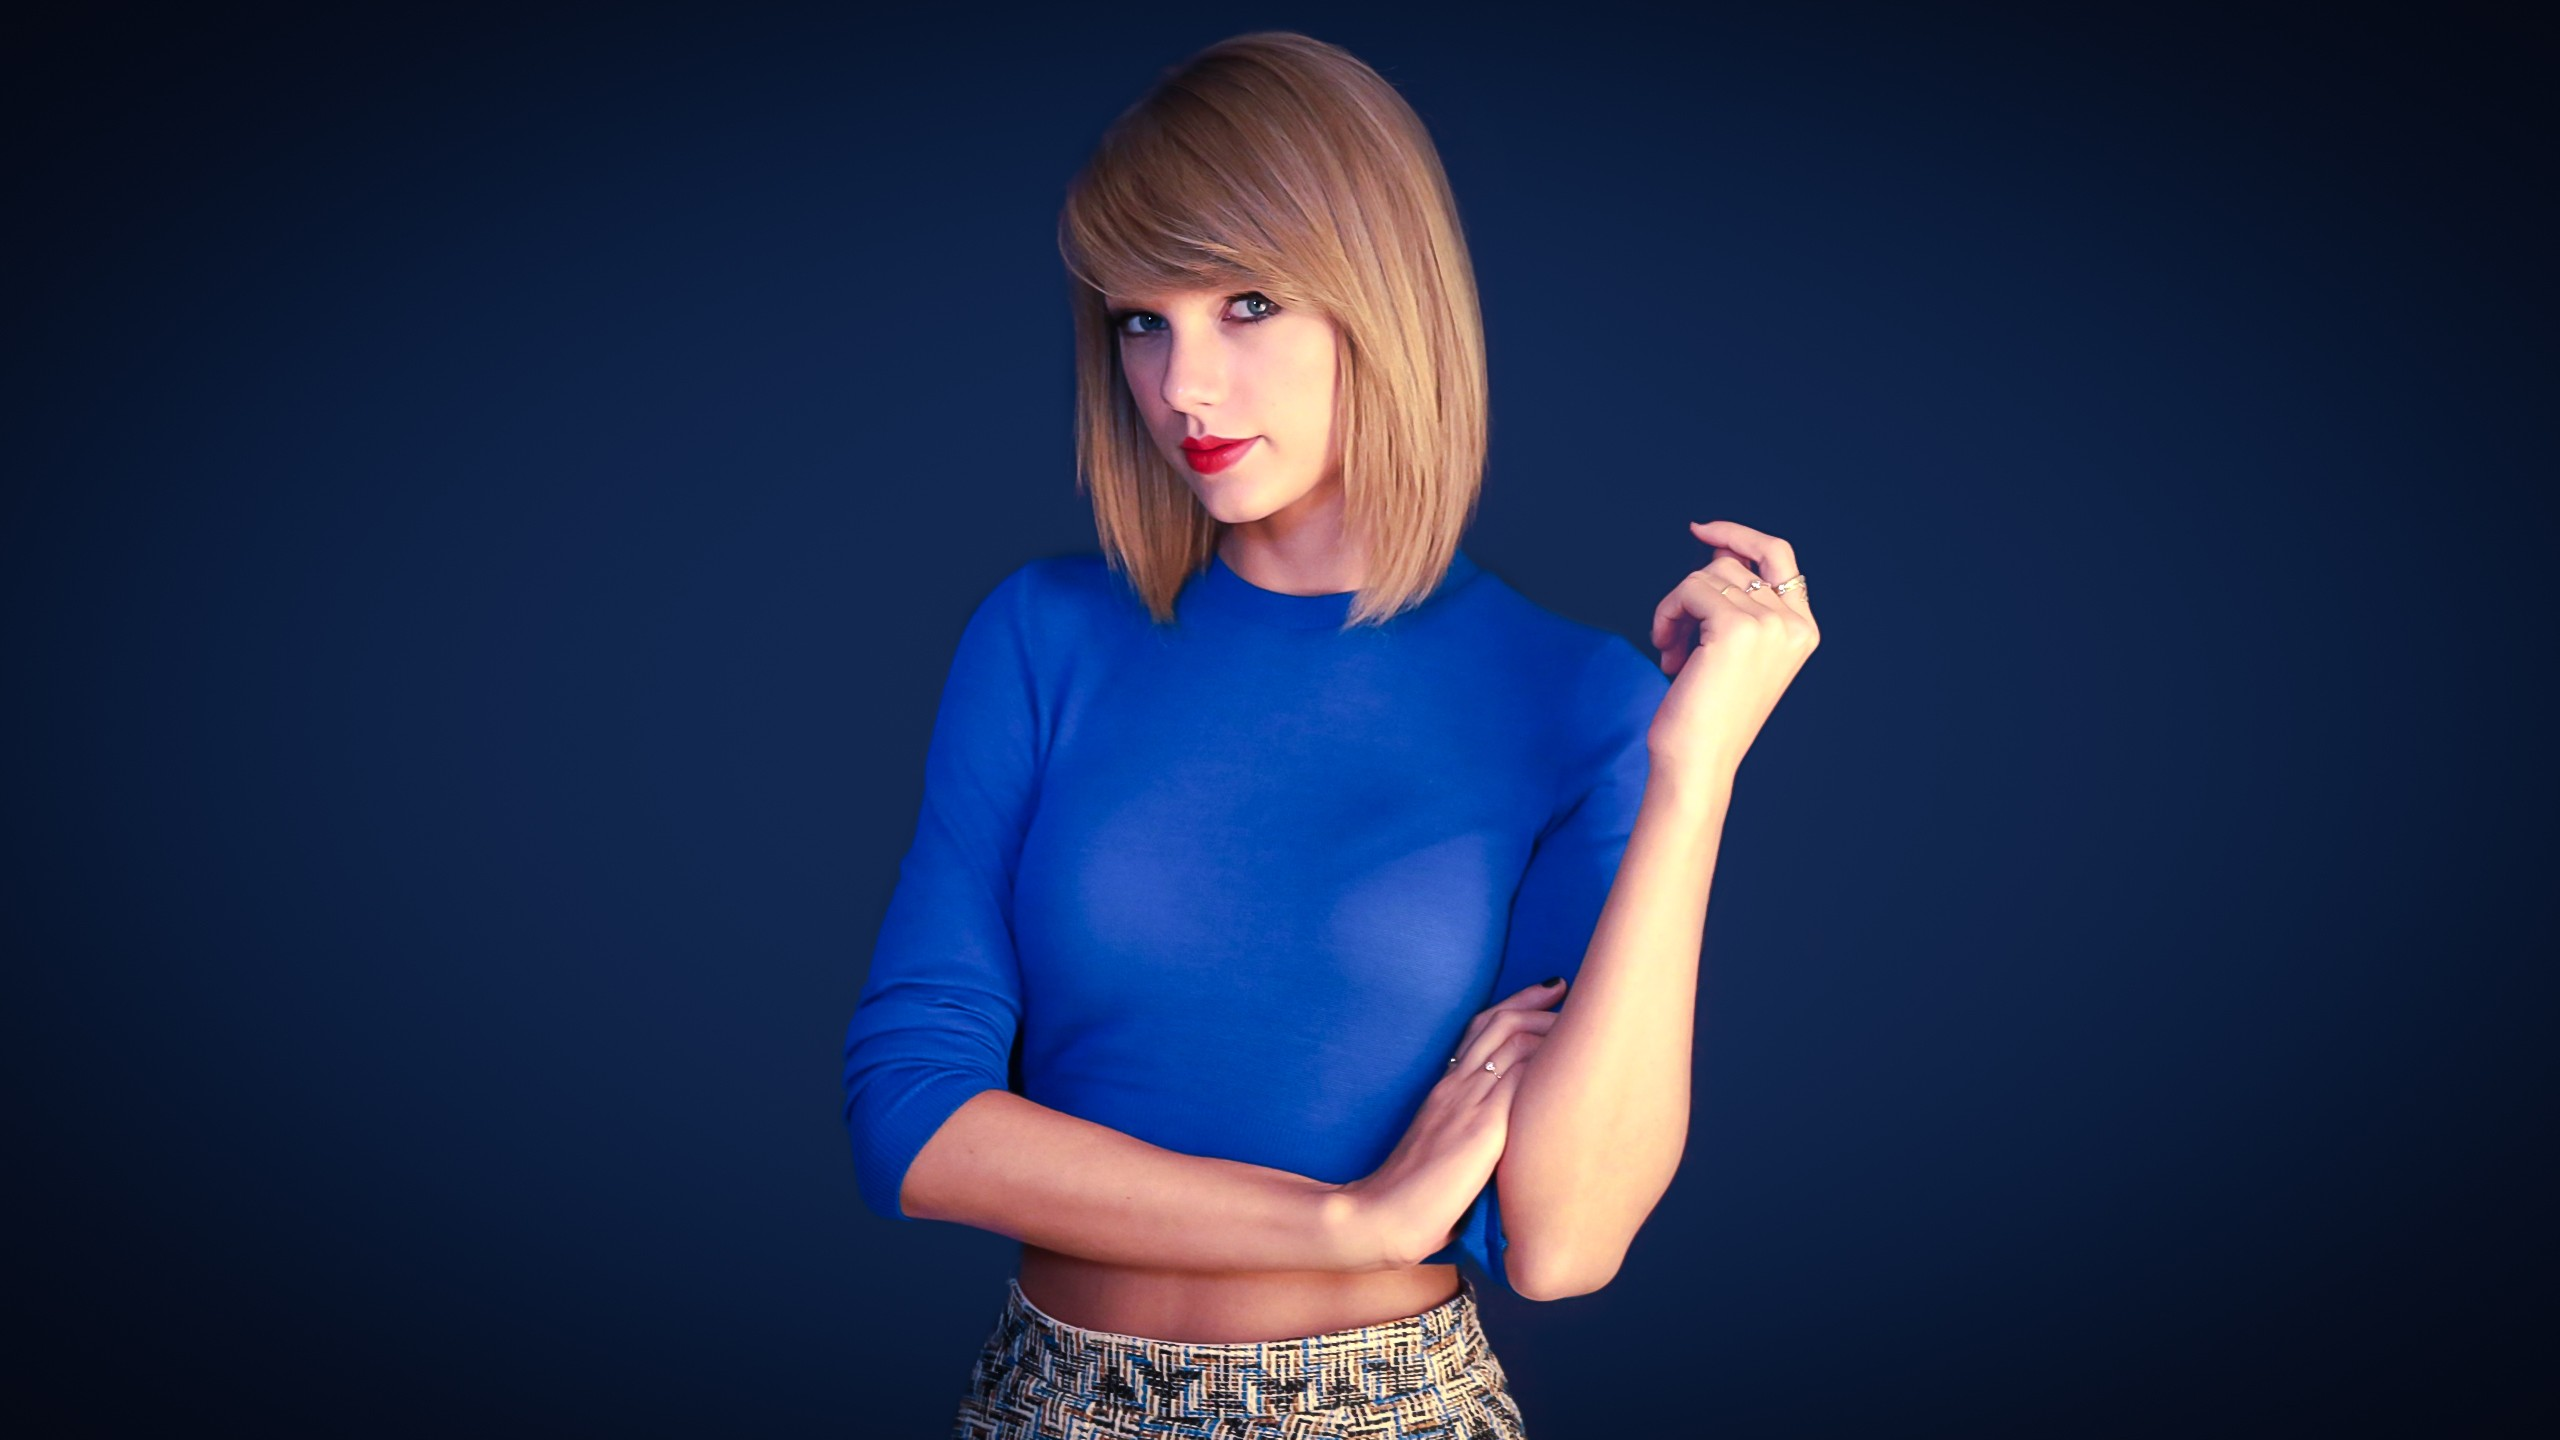 taylor wallpapers, photos and desktop backgrounds up to 8K ...